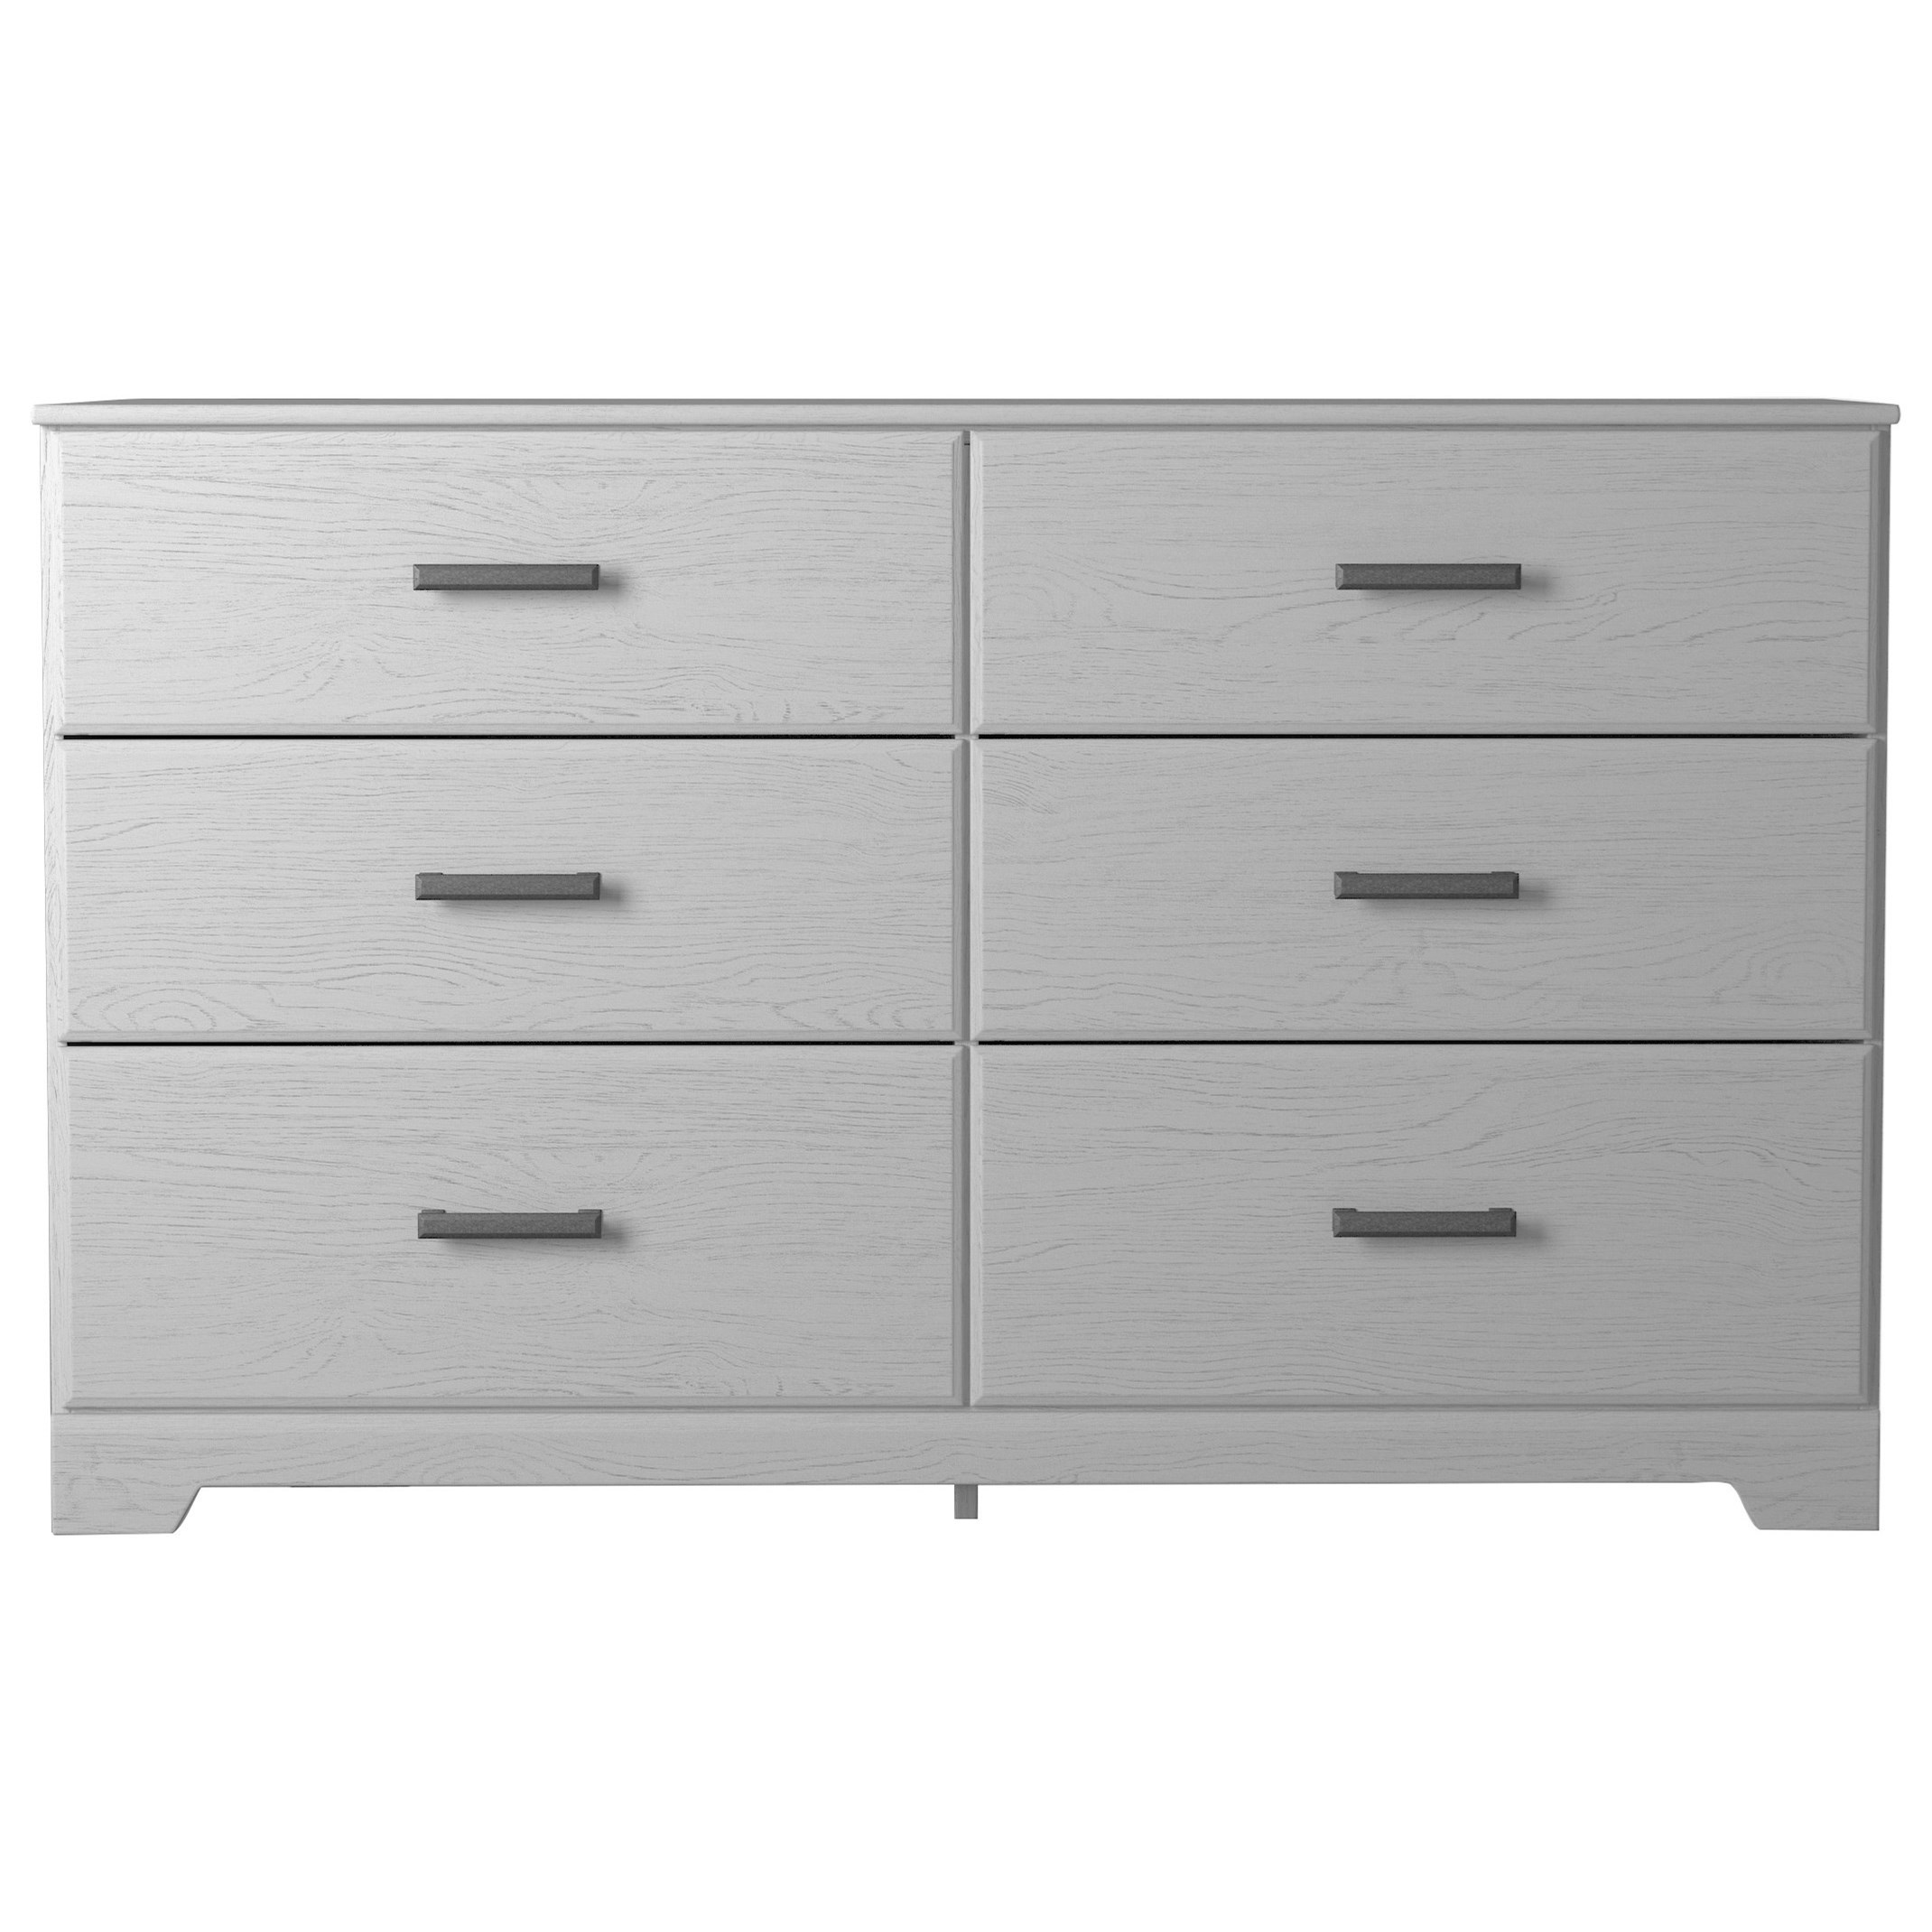 Stelsie Dresser by Signature Design by Ashley at Zak's Warehouse Clearance Center